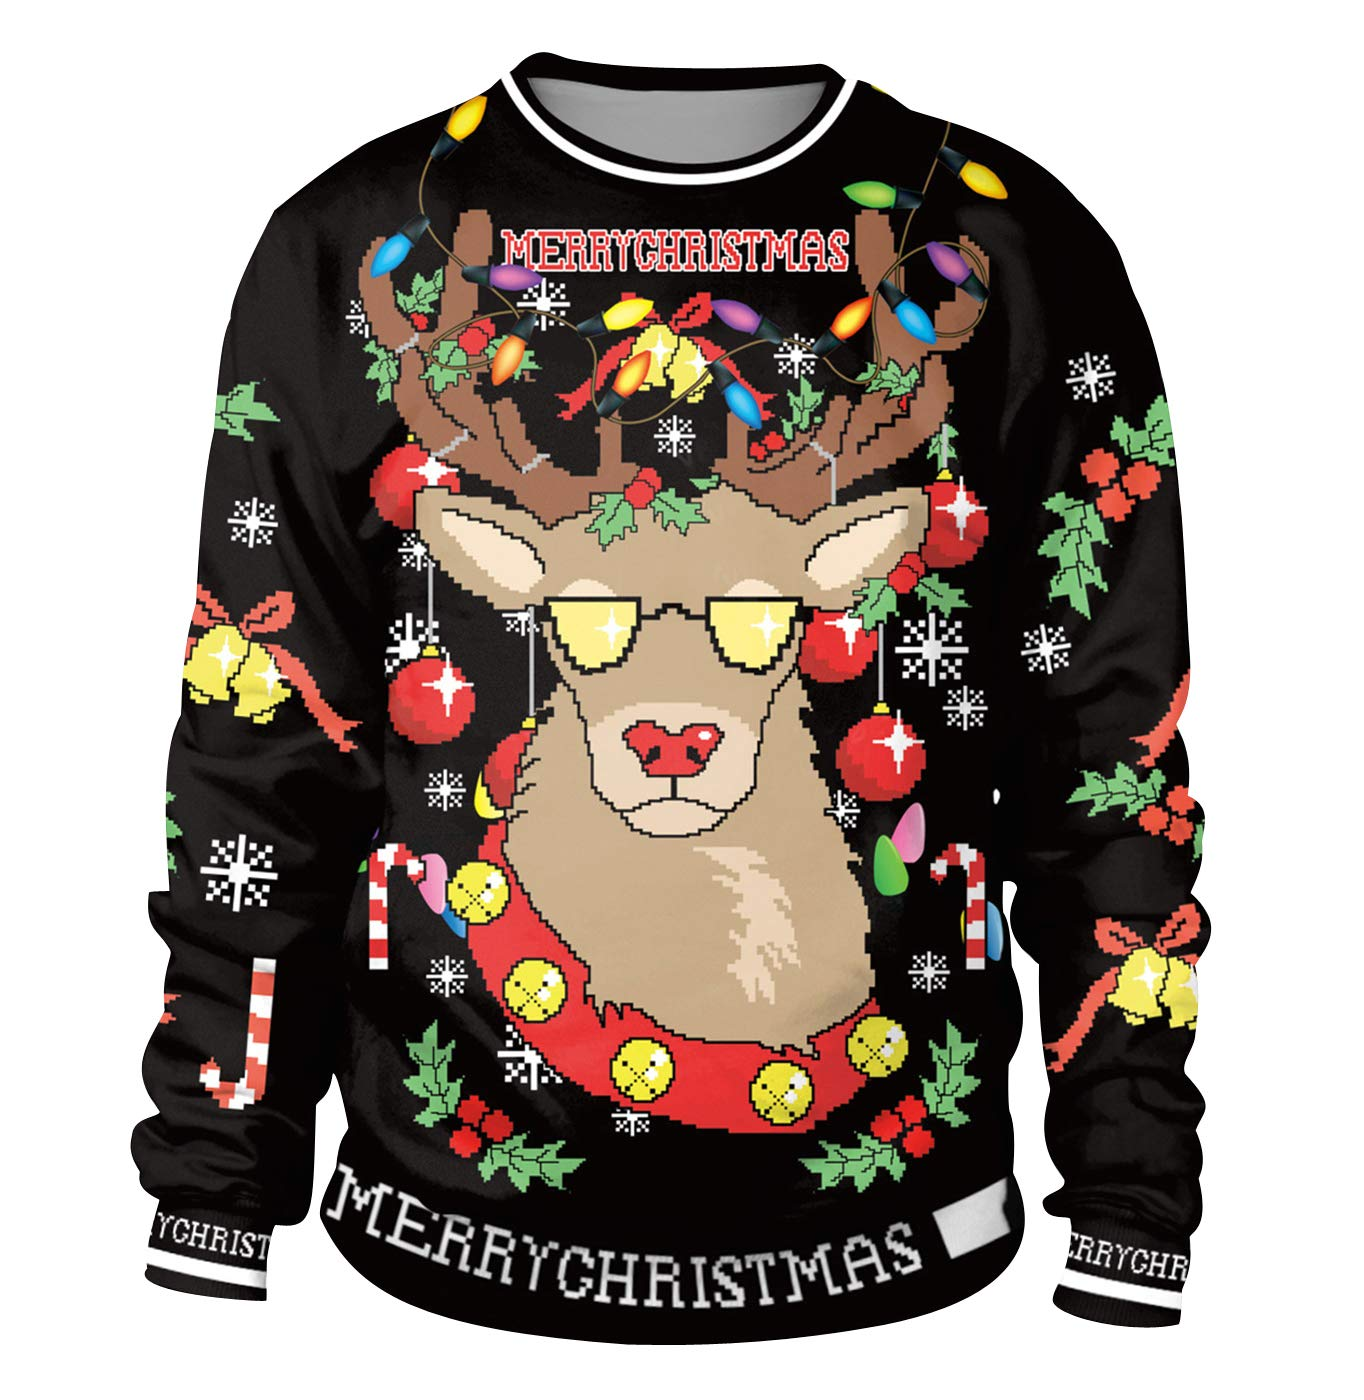 Christmas Tops.Christmas Jumpers Womens Mens Funny Xmas Jumpers Sweatshirts Novelty Ugly Christmas Sweaters Pullover Reindeer Festive Santa Christmas Jumper Graphic